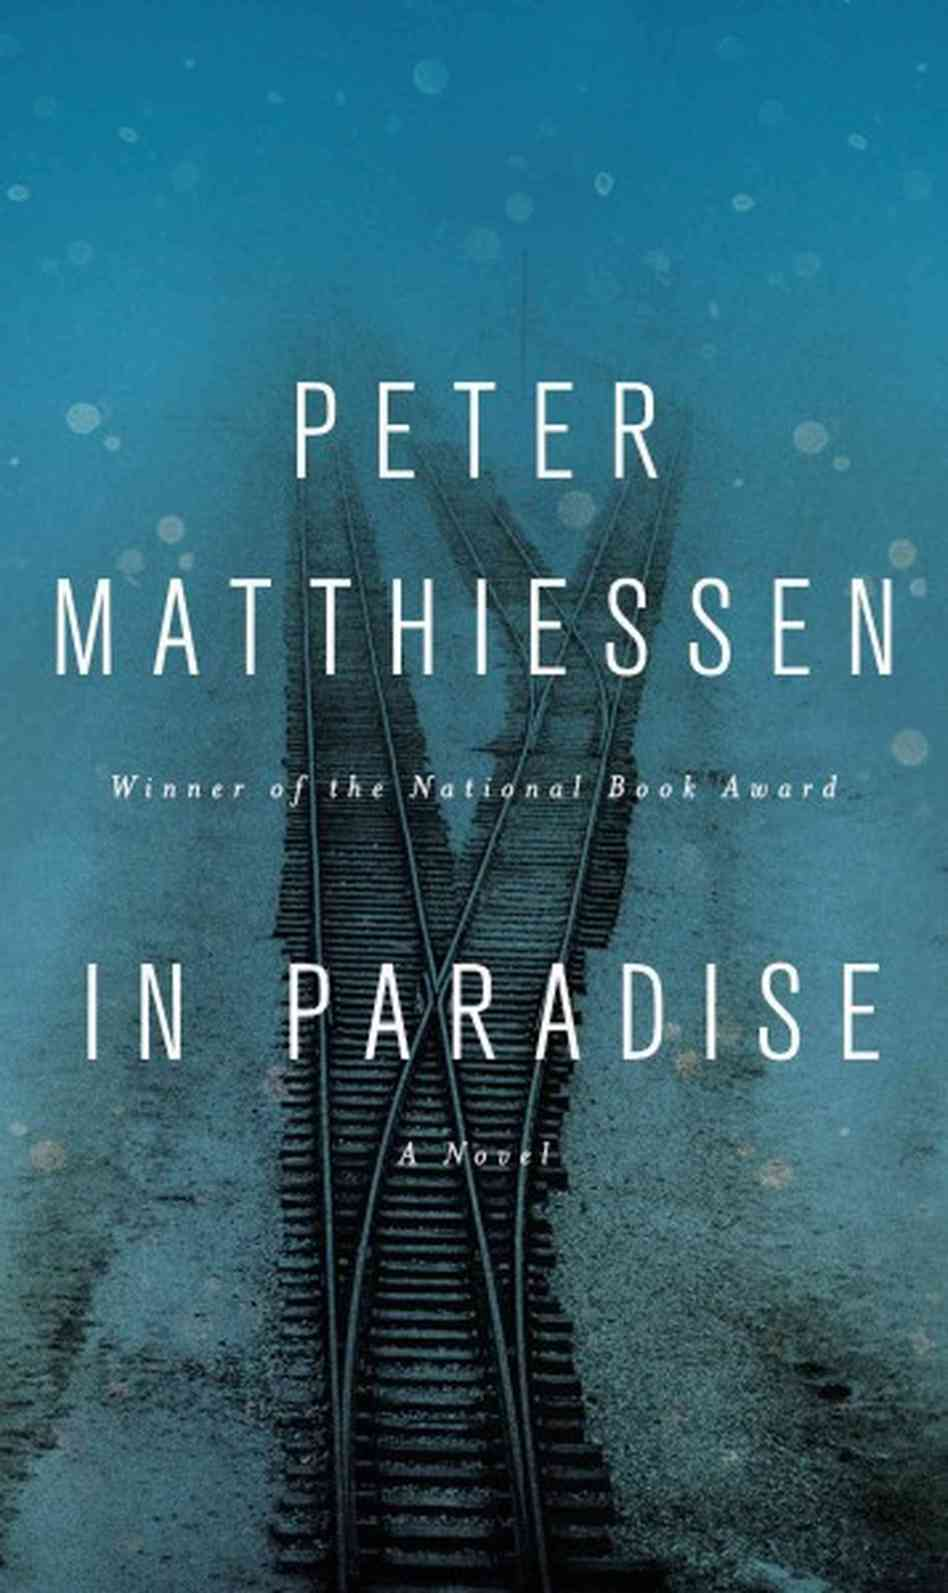 In Paradise novel cover photo